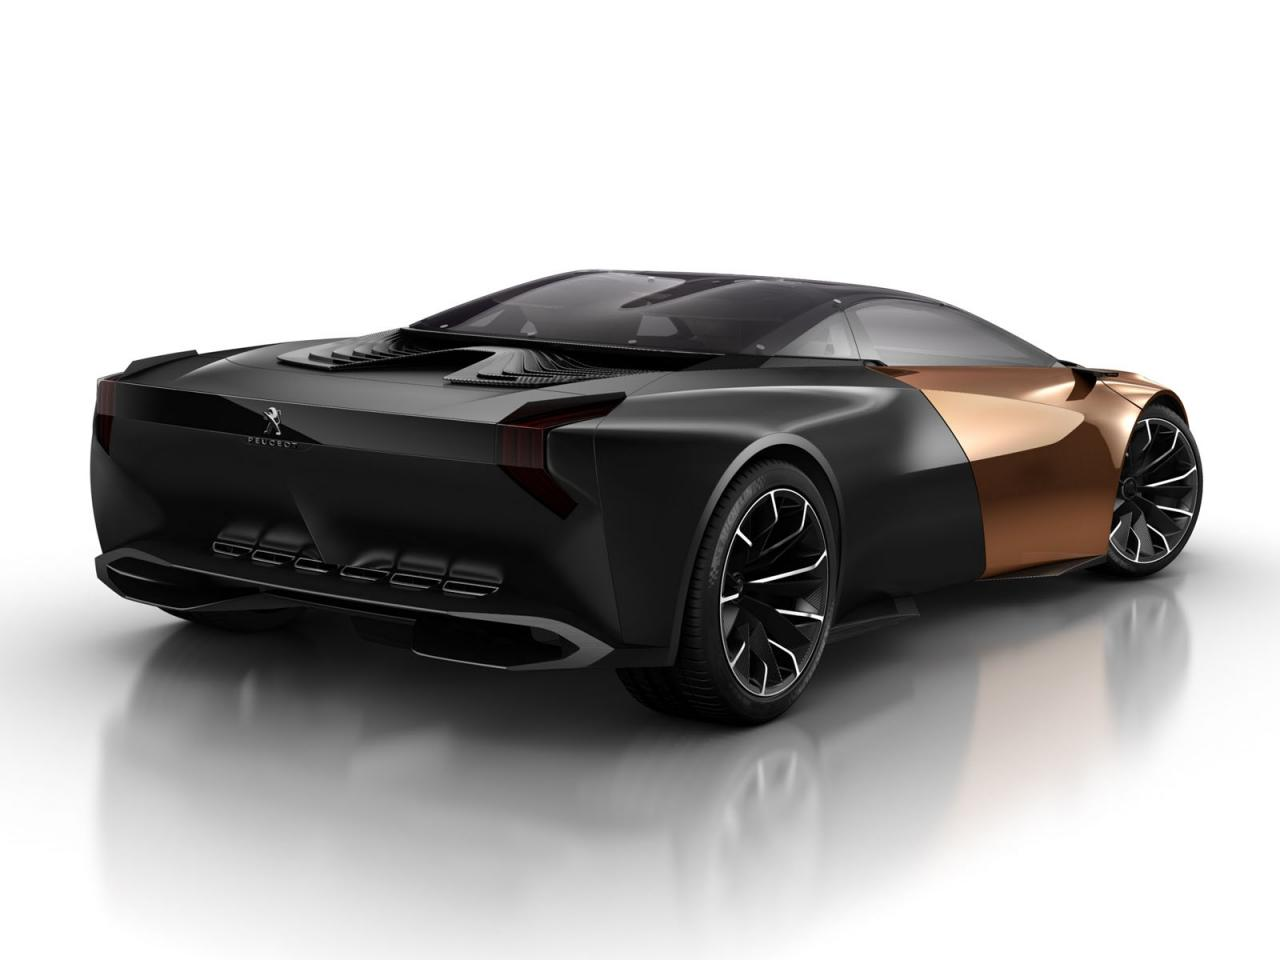 2013 Peugeot Onyx Concept 1 The leaked pictures of the 2013 Peugeot Onyx Concept give us an insight into the model